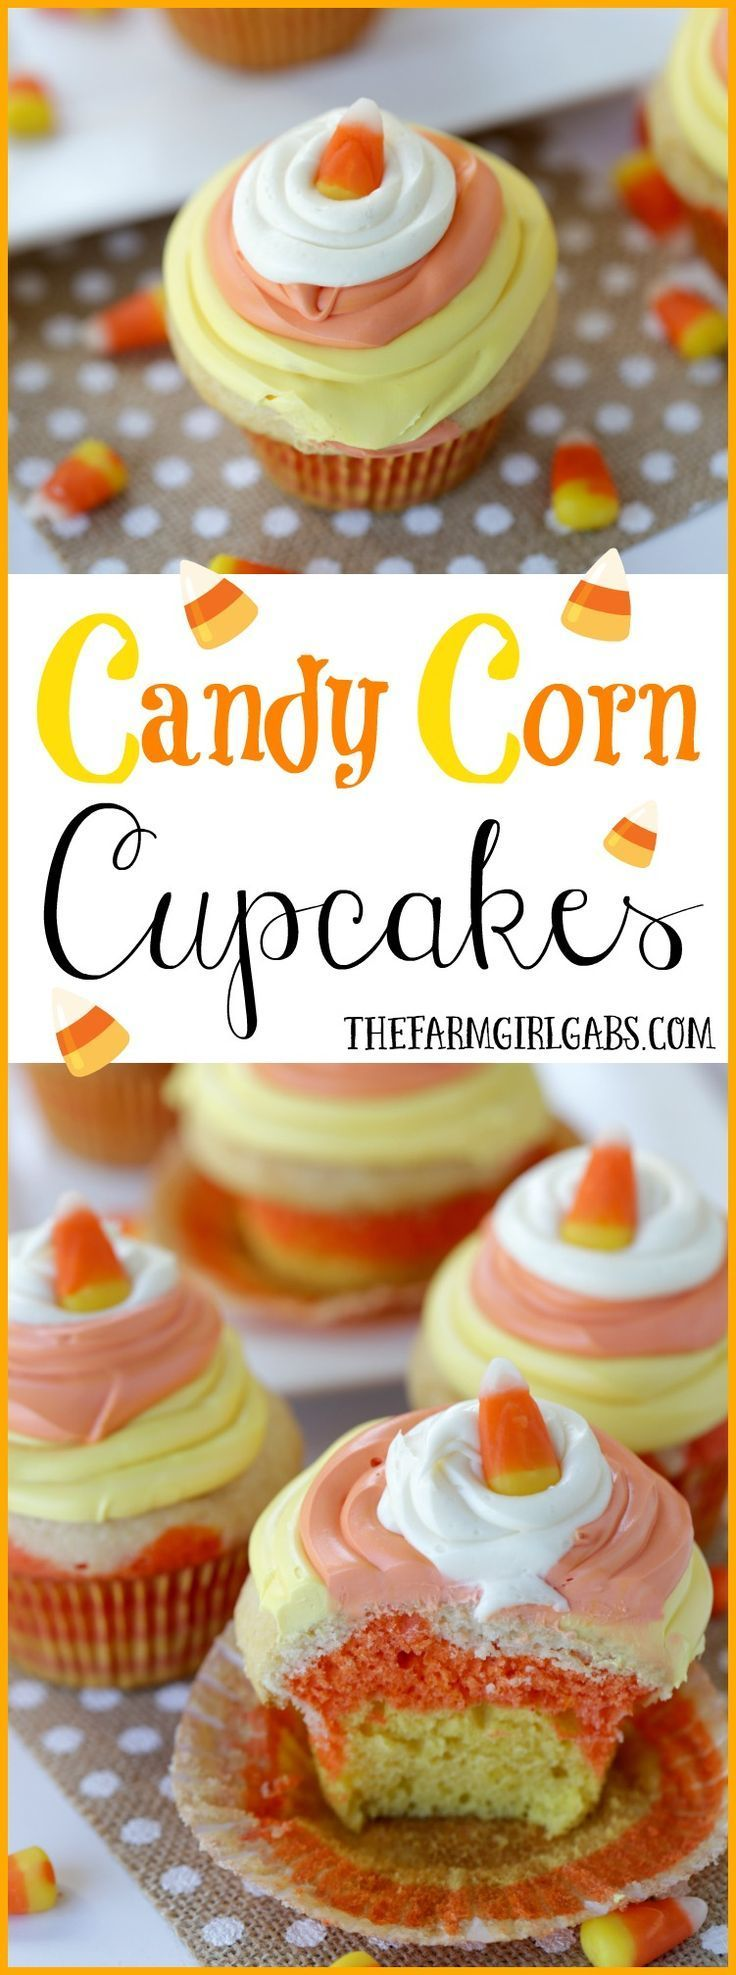 These colorful and delicious Candy Corn Cupcakes are the perfect fall treats. This simple cupcake recipe is perfect for school parties, snack-time, lunch-time, anytime!